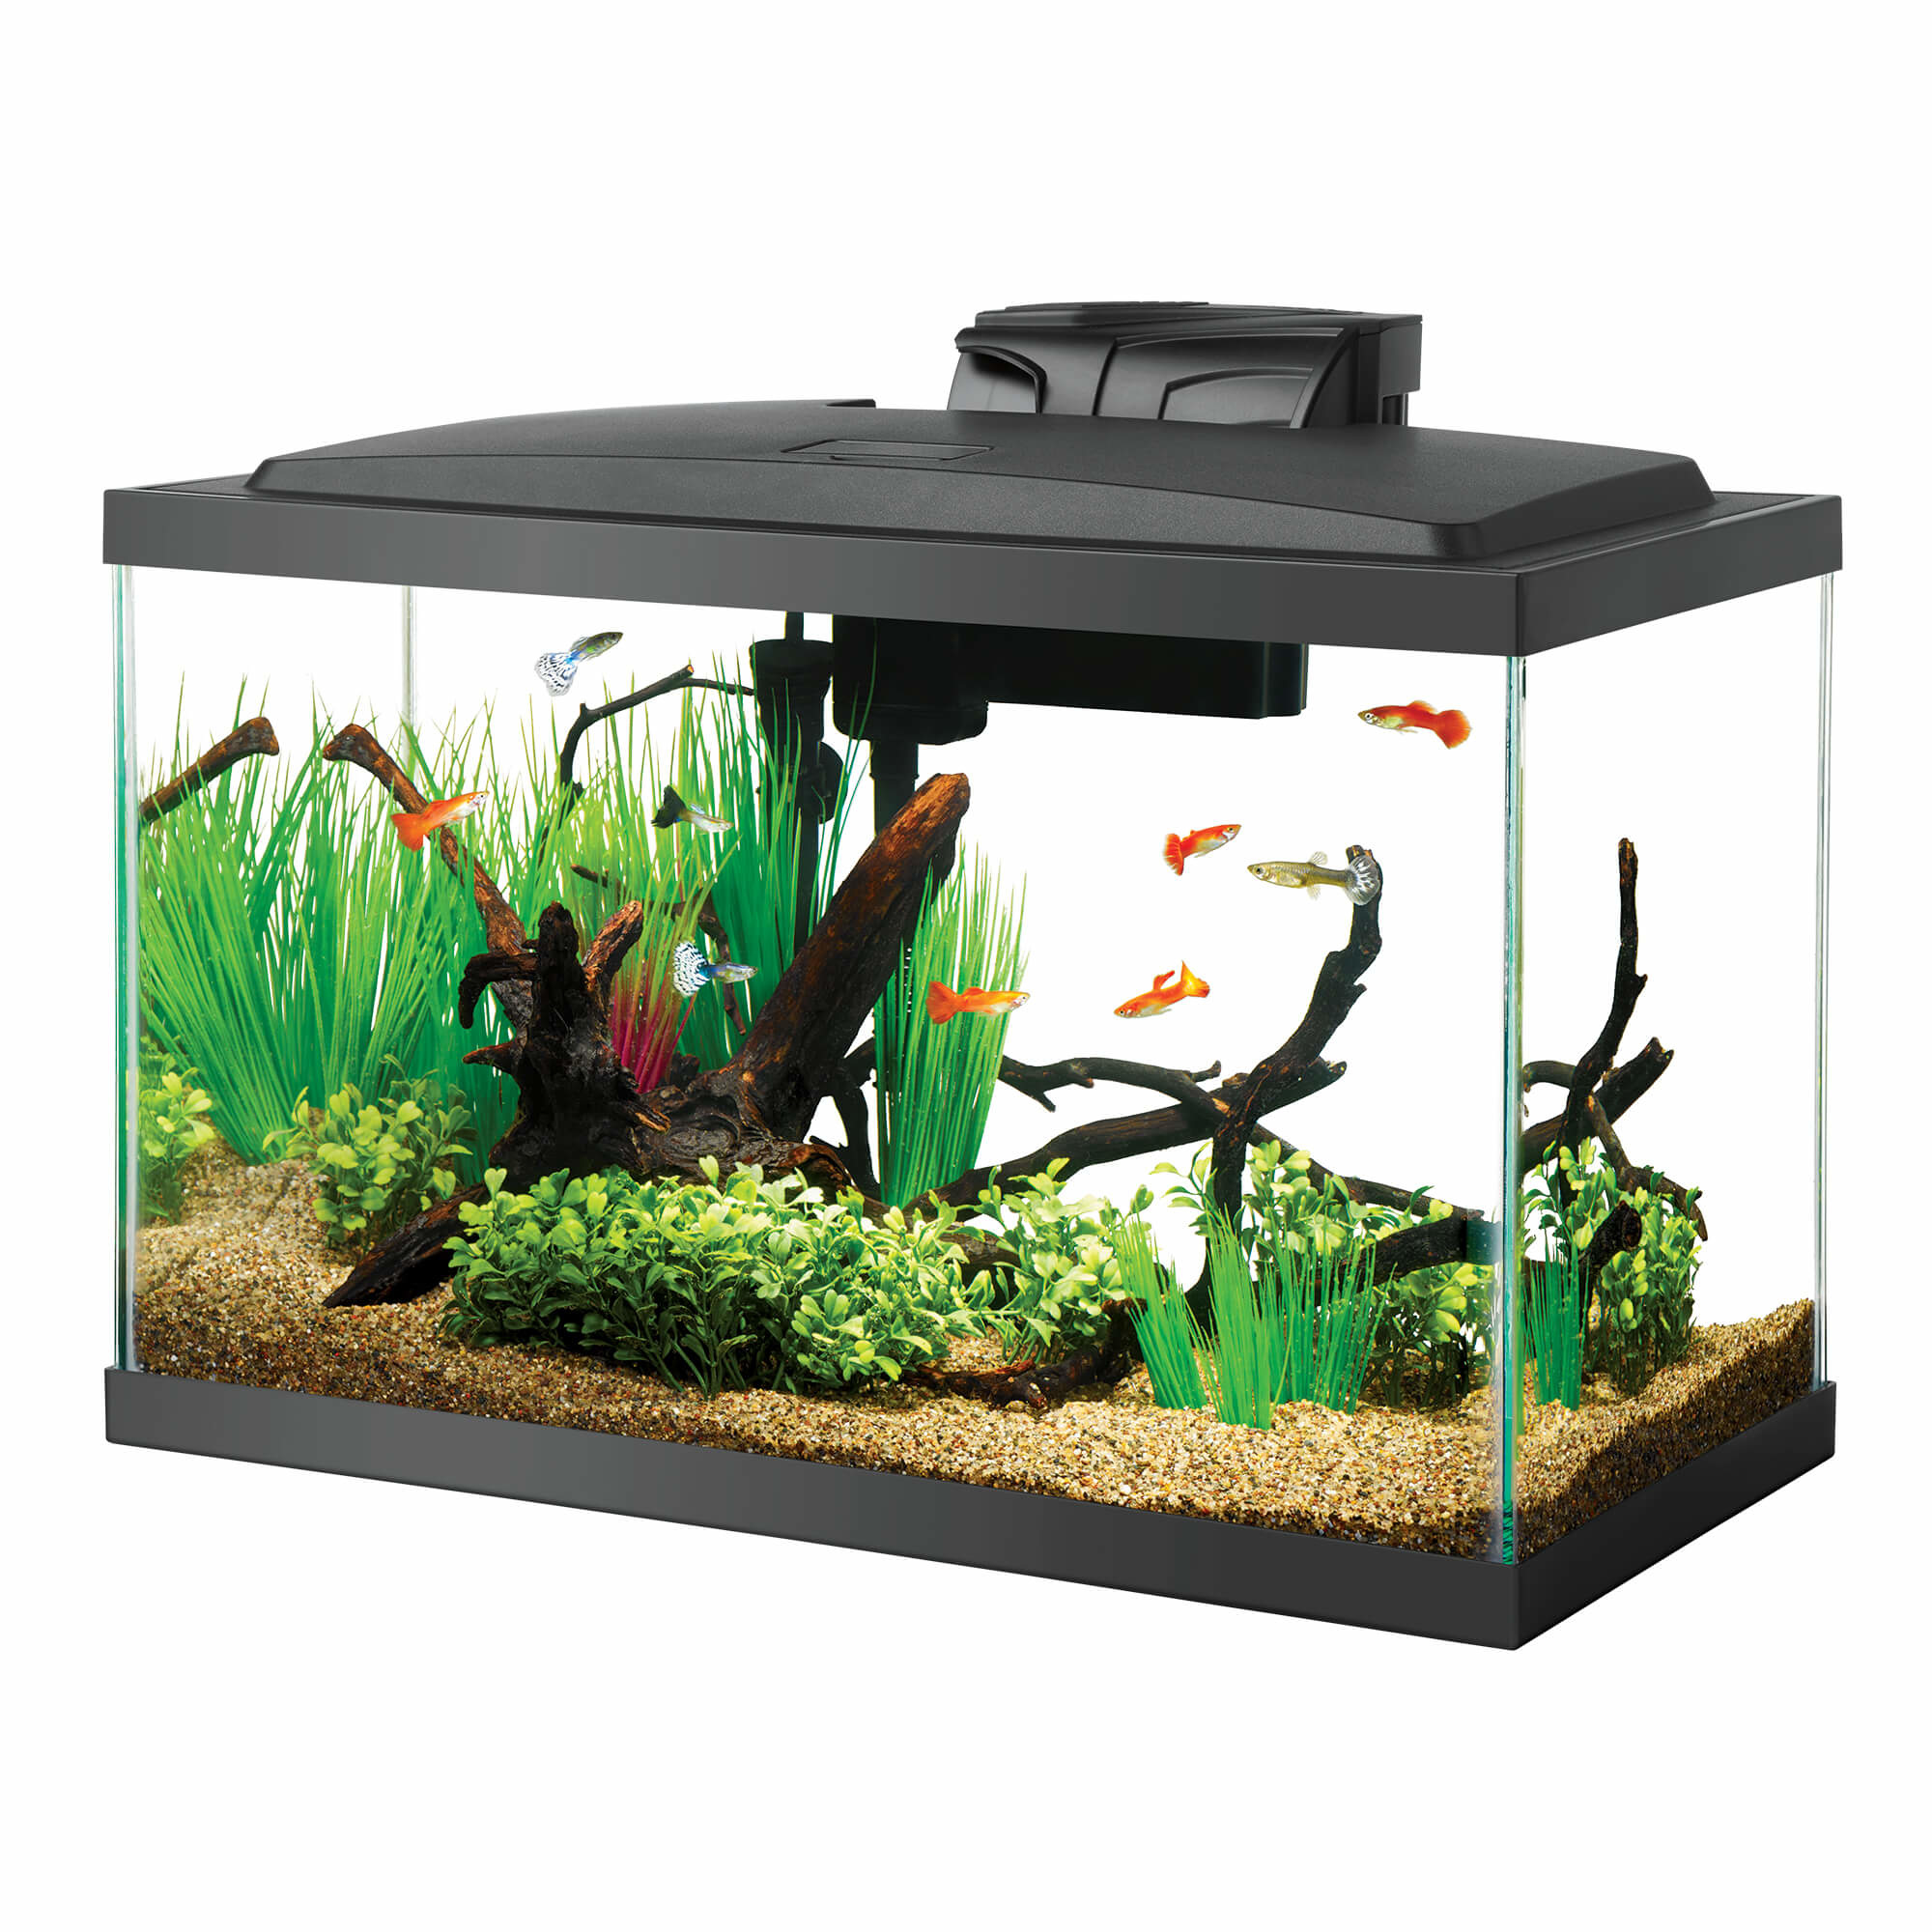 Aqueon Aqueon 10 gallon LED Pre Pricekit